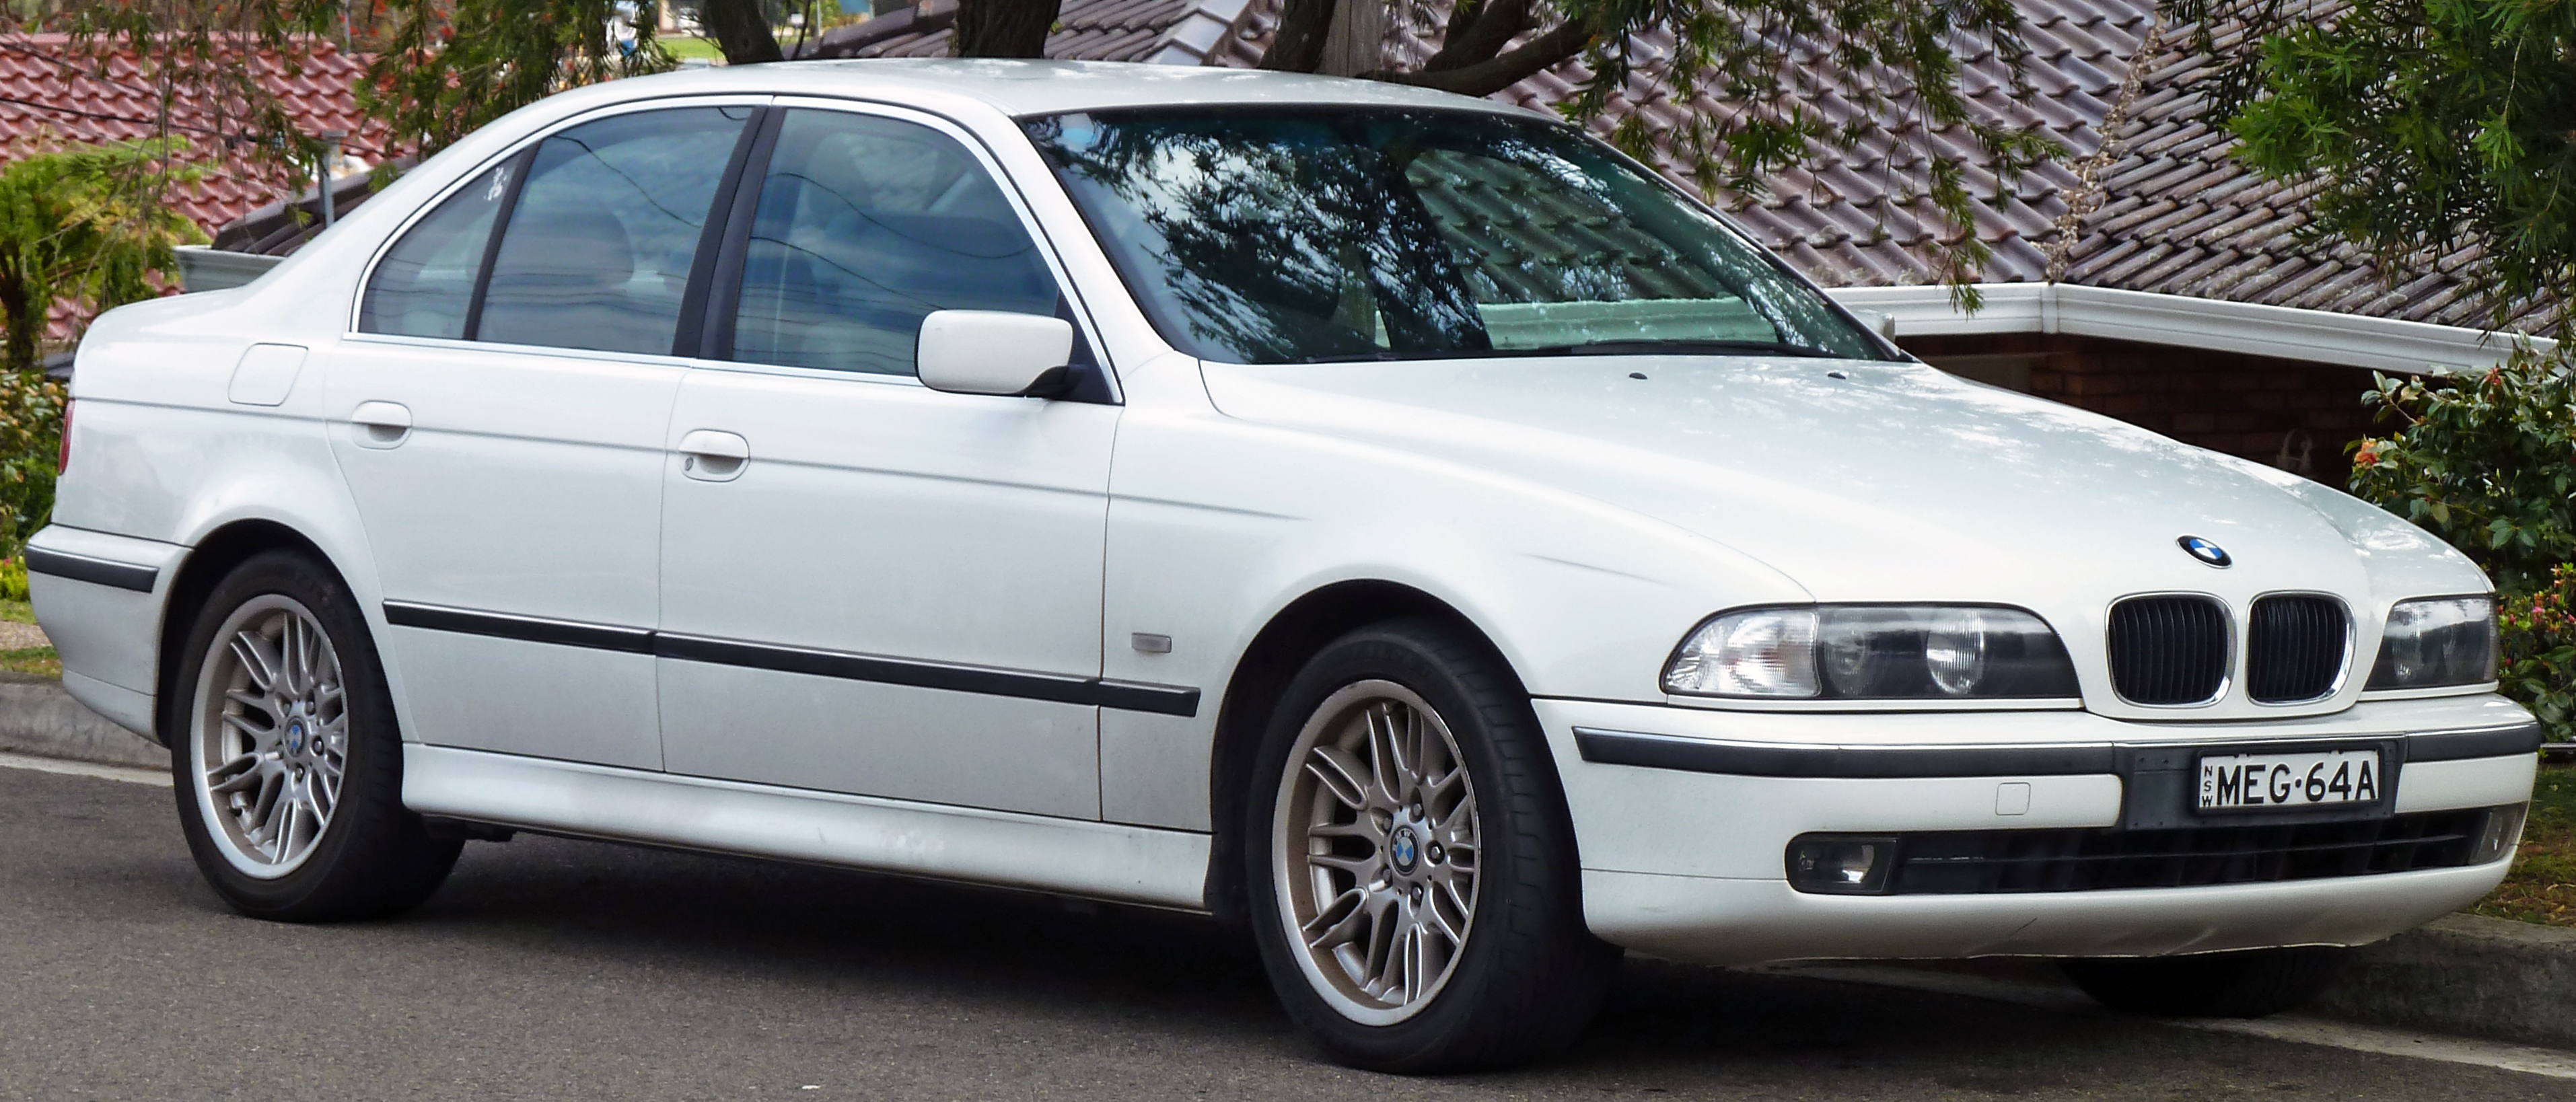 File:1996-2000 BMW 523i (E39) sedan 02.jpg - Wikimedia Commons